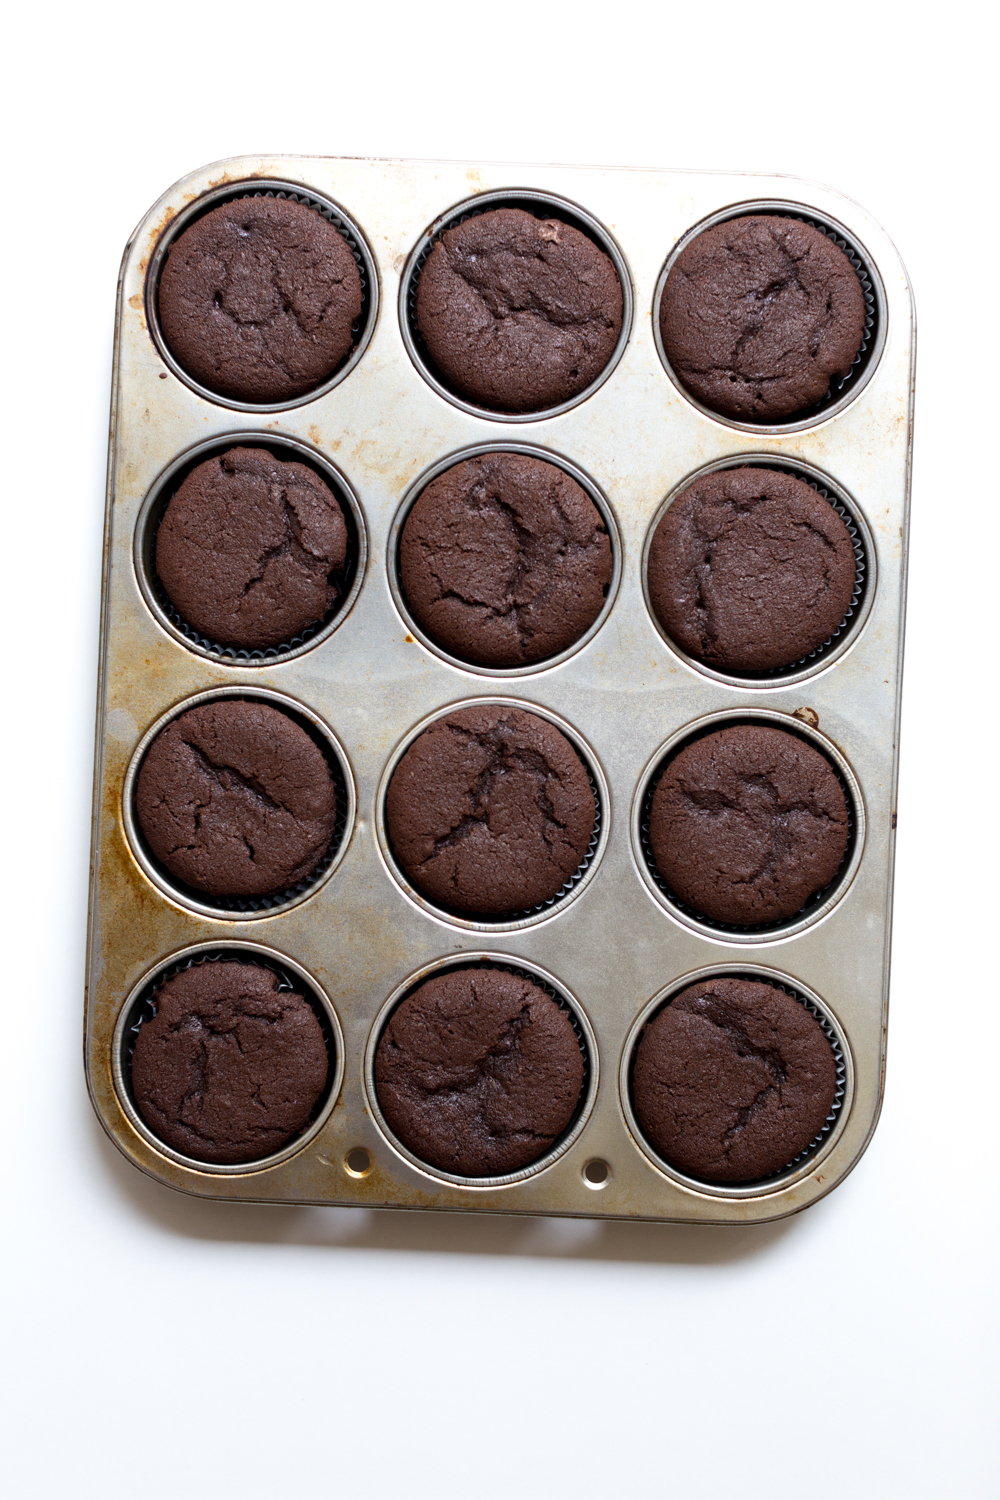 The cupcakes should bake up just above the top of the muffin tin.